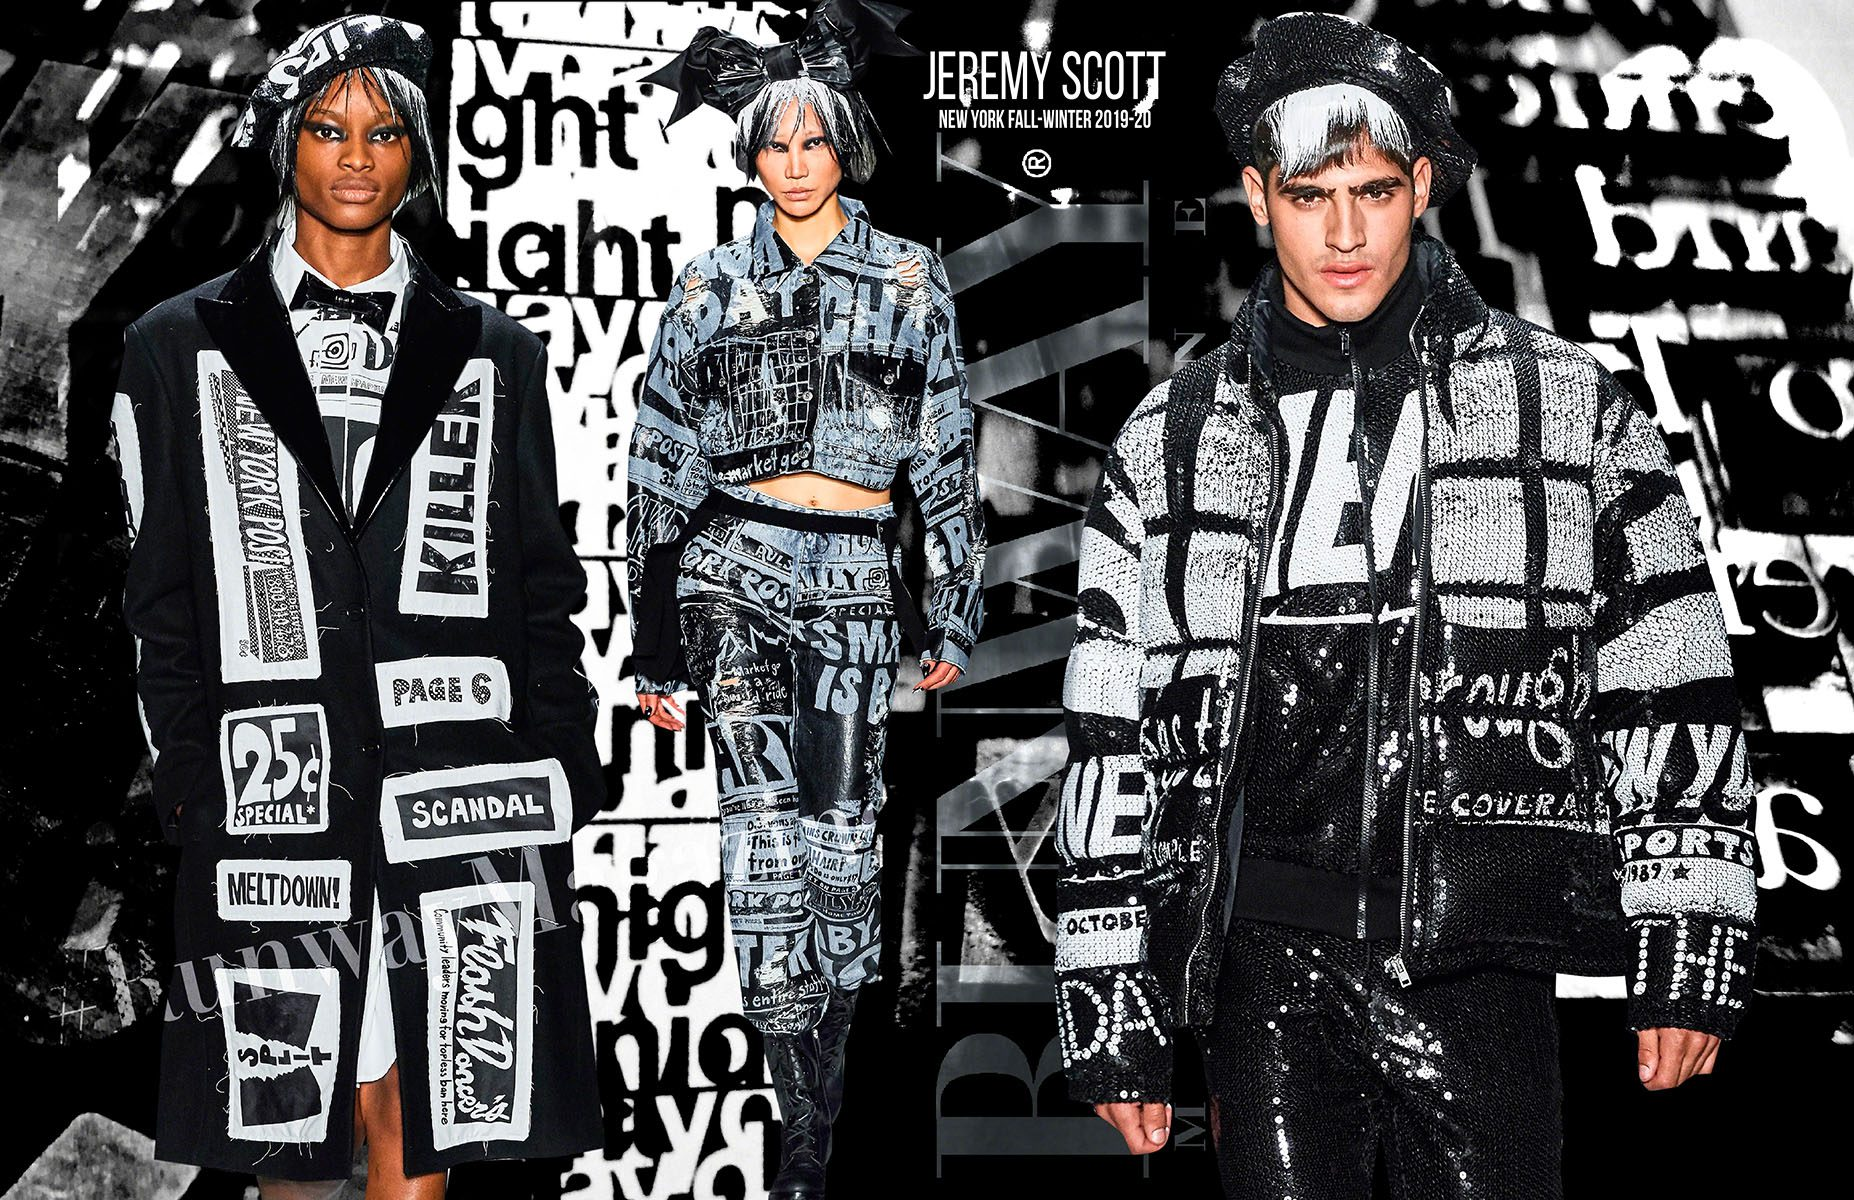 Jeremy Scott Fall-Winter 2019-2020 New York by RUNWAY MAGAZINE